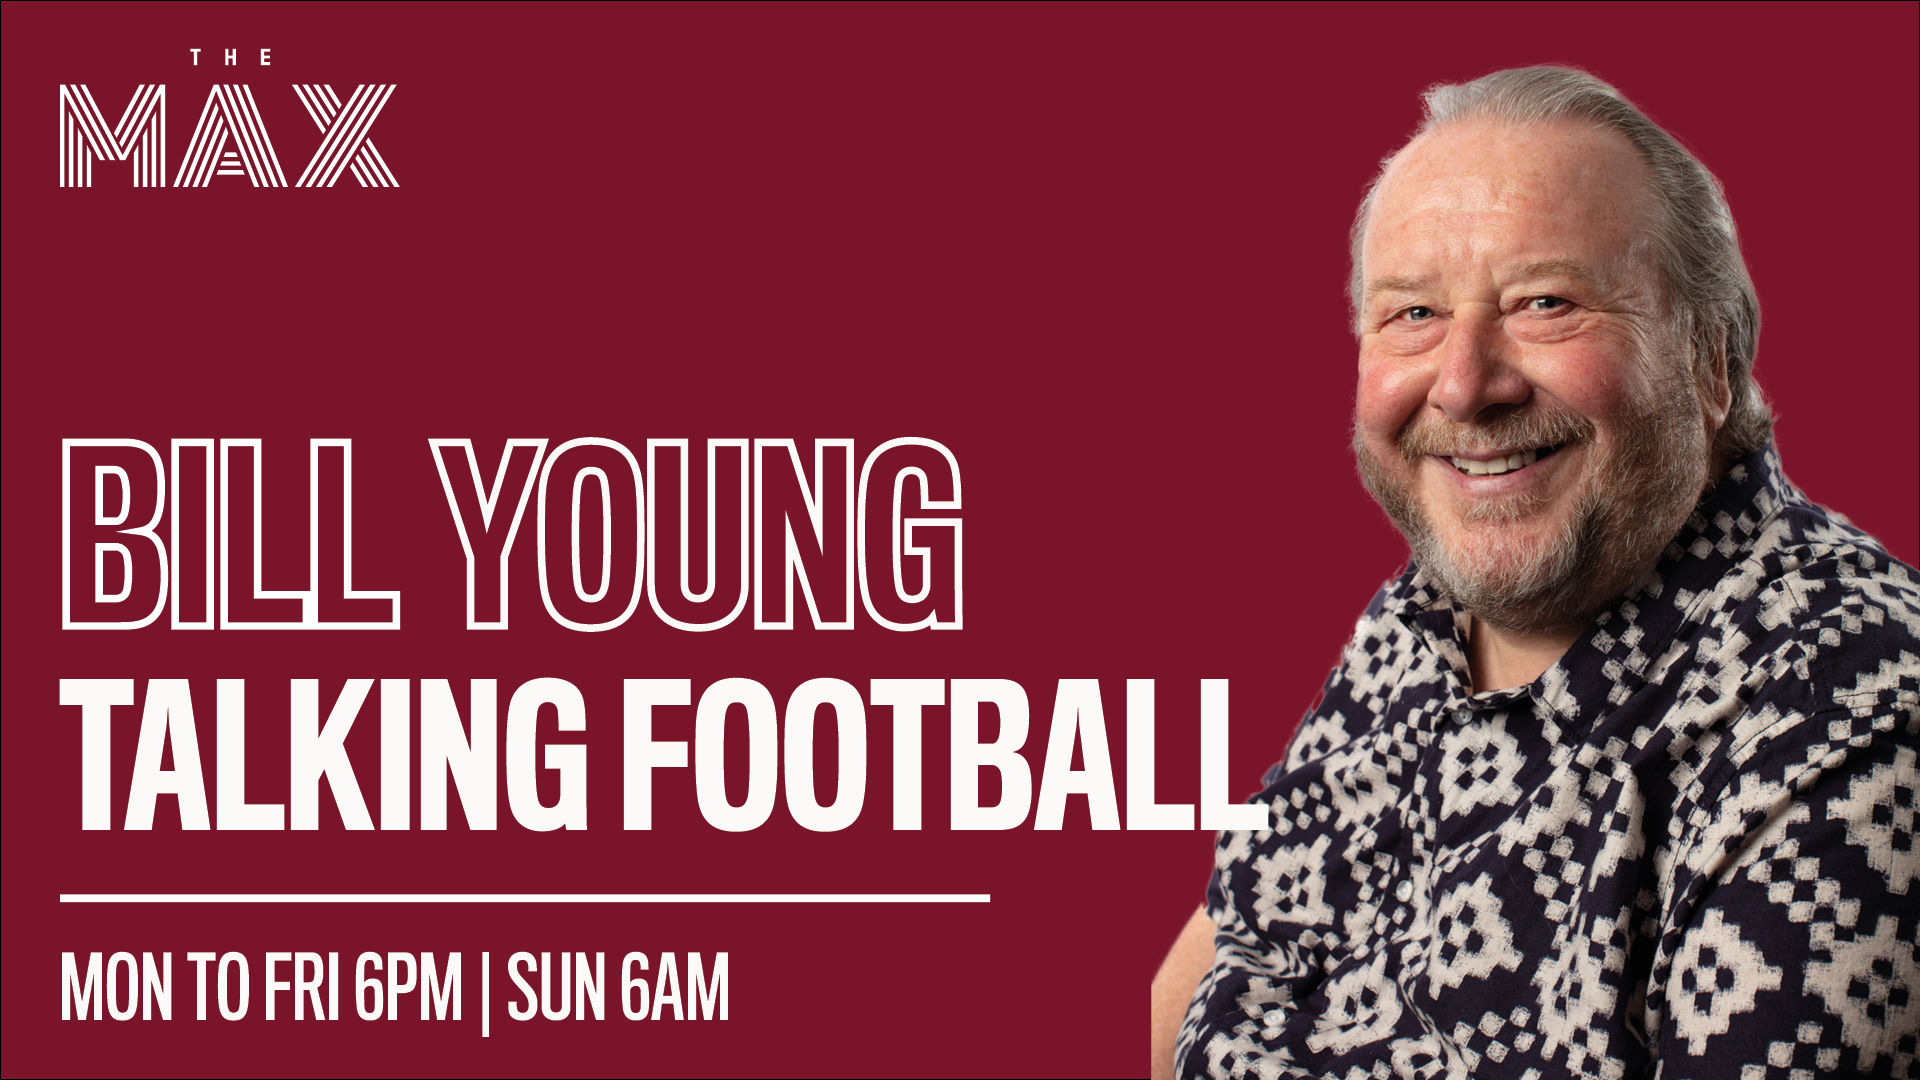 Talking Football with Bill Young - Friday 19 March